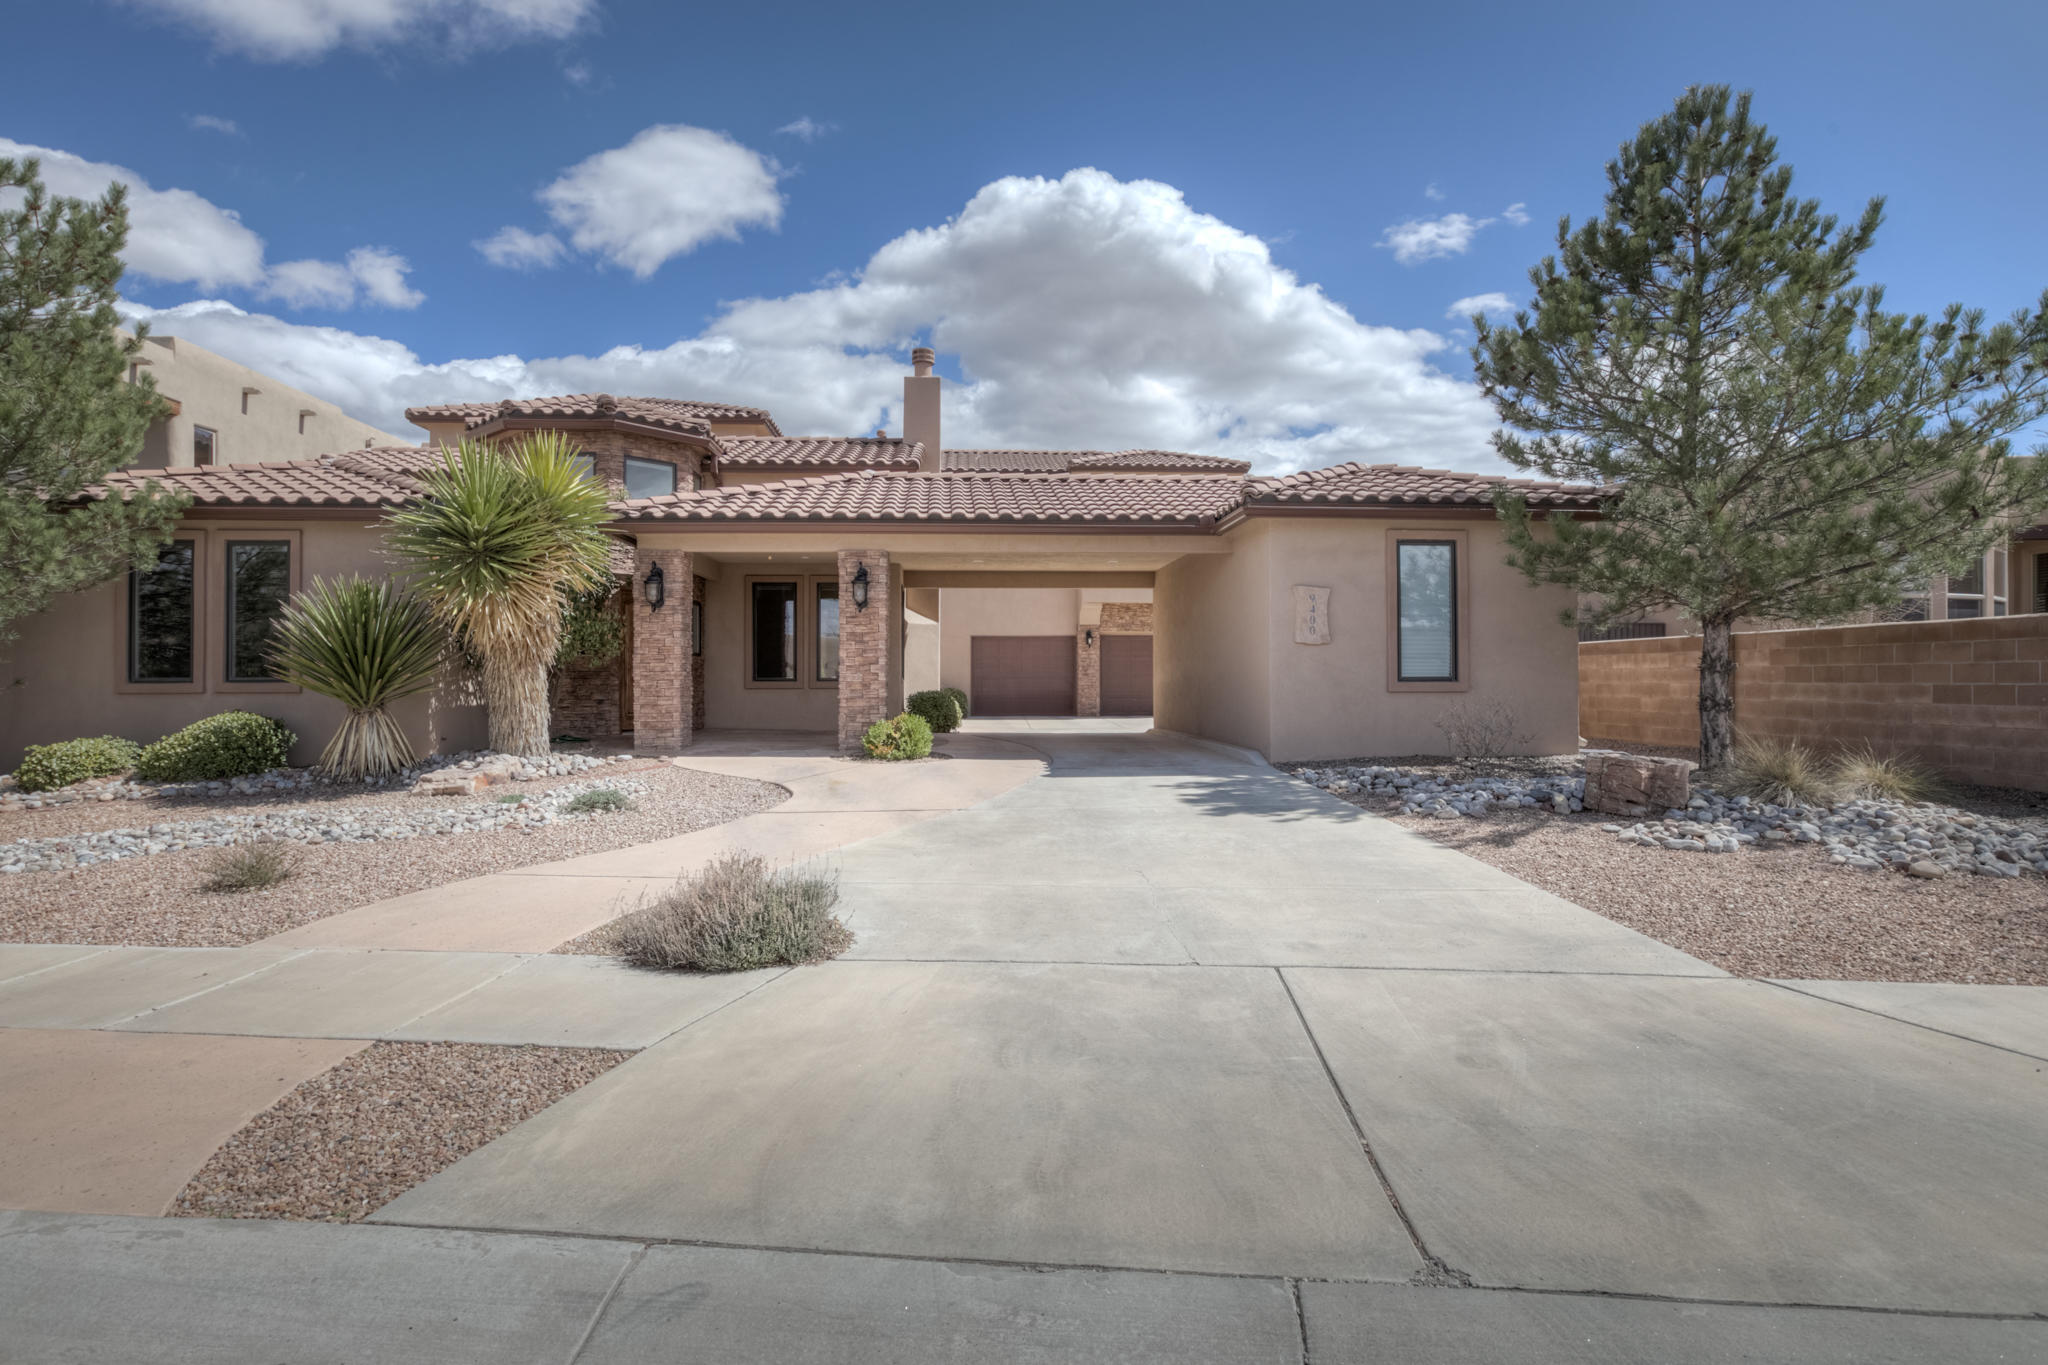 9400 BEAR MOUNTAIN Trail, Albuquerque NM 87113